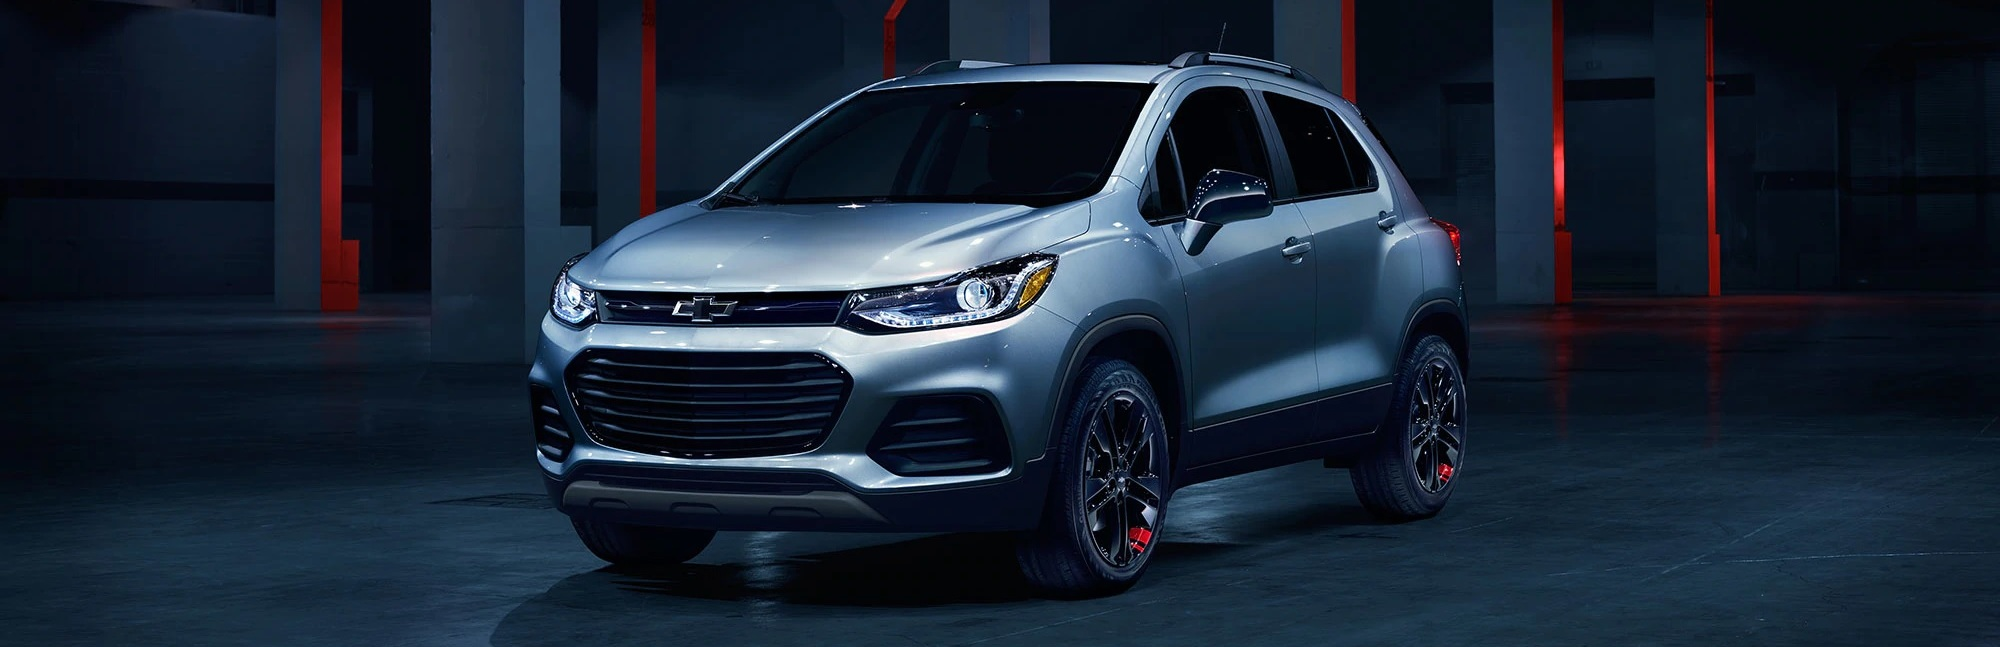 2020 Chevrolet Trax Financing near Claremore, OK